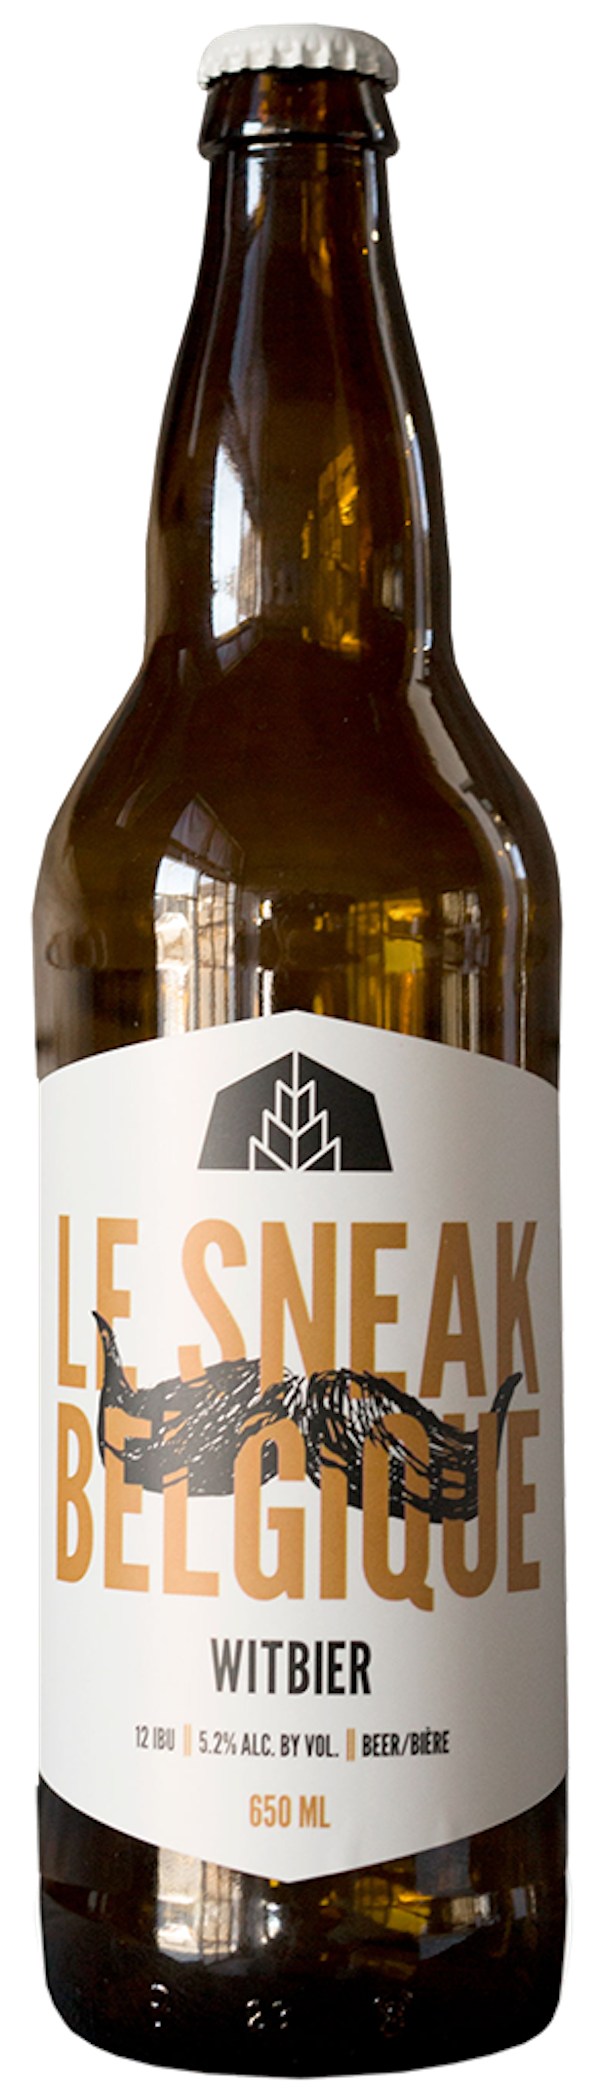 Le Sneak Belgique Barn Hammer Brewing Company